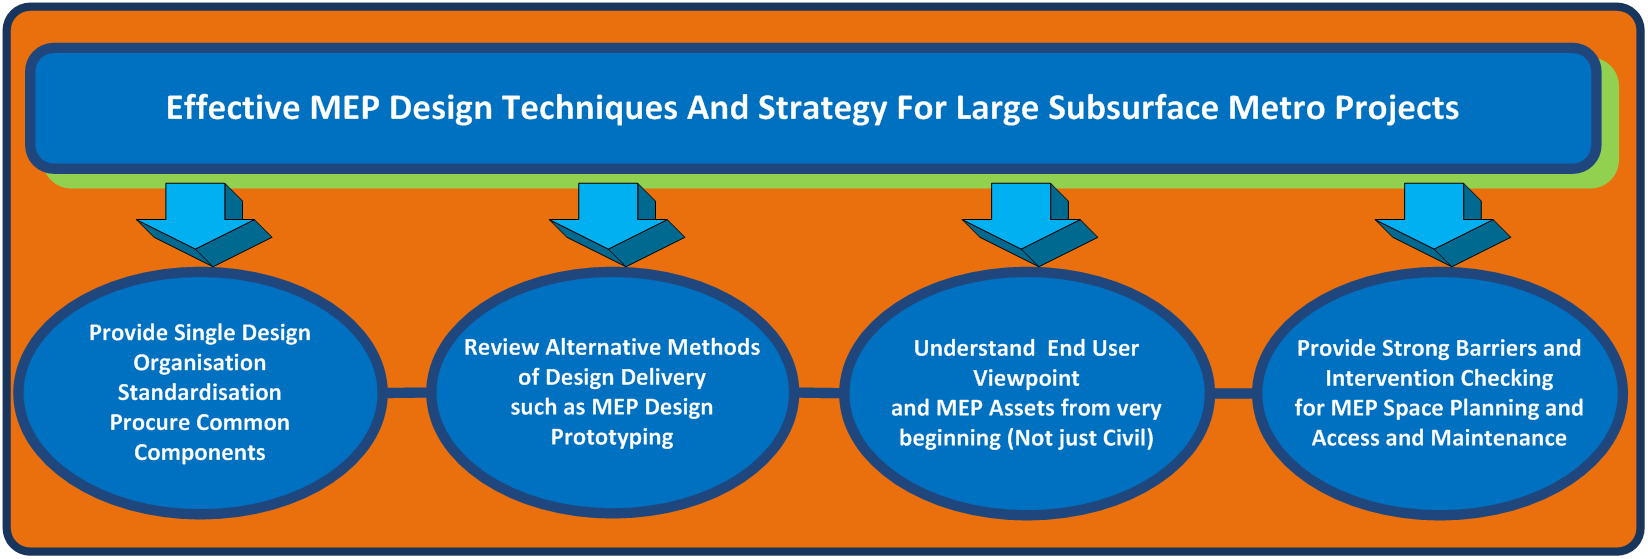 Effective Mep Design Techniques And Strategy For Large